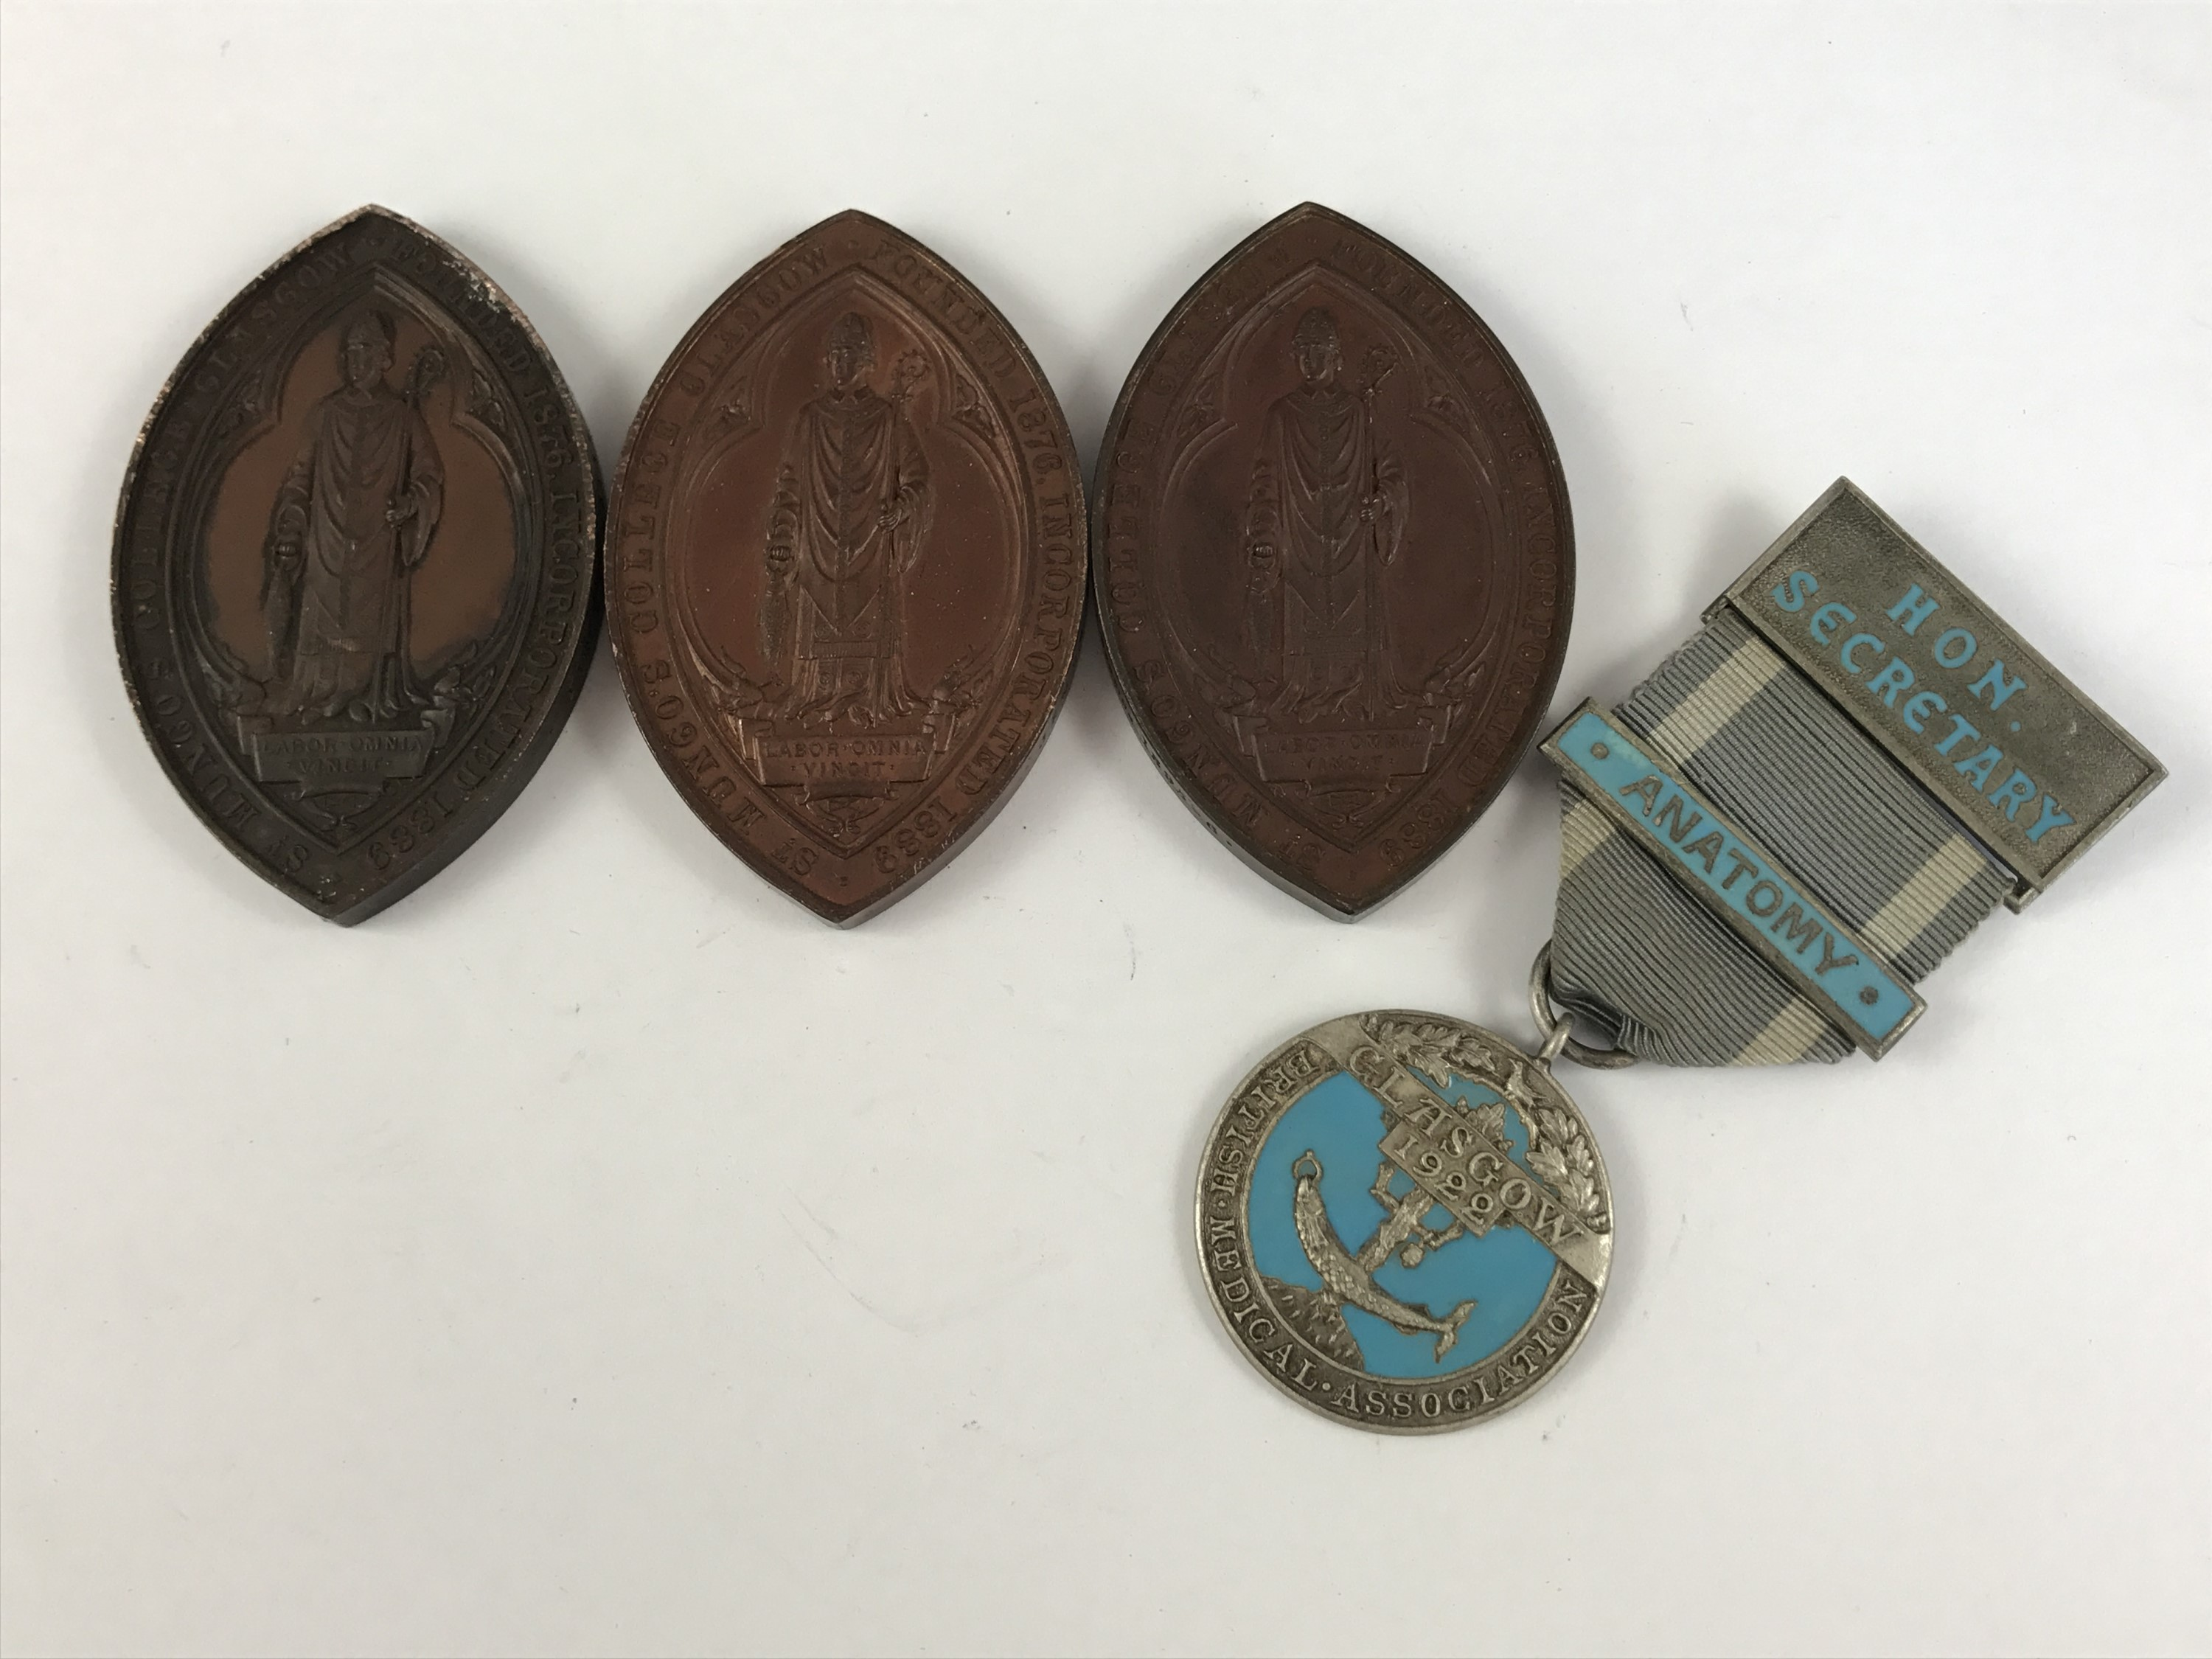 Lot 37 - Three Victorian medical bronze prize medallion of St Mungo's College, University of Glasgow, awarded